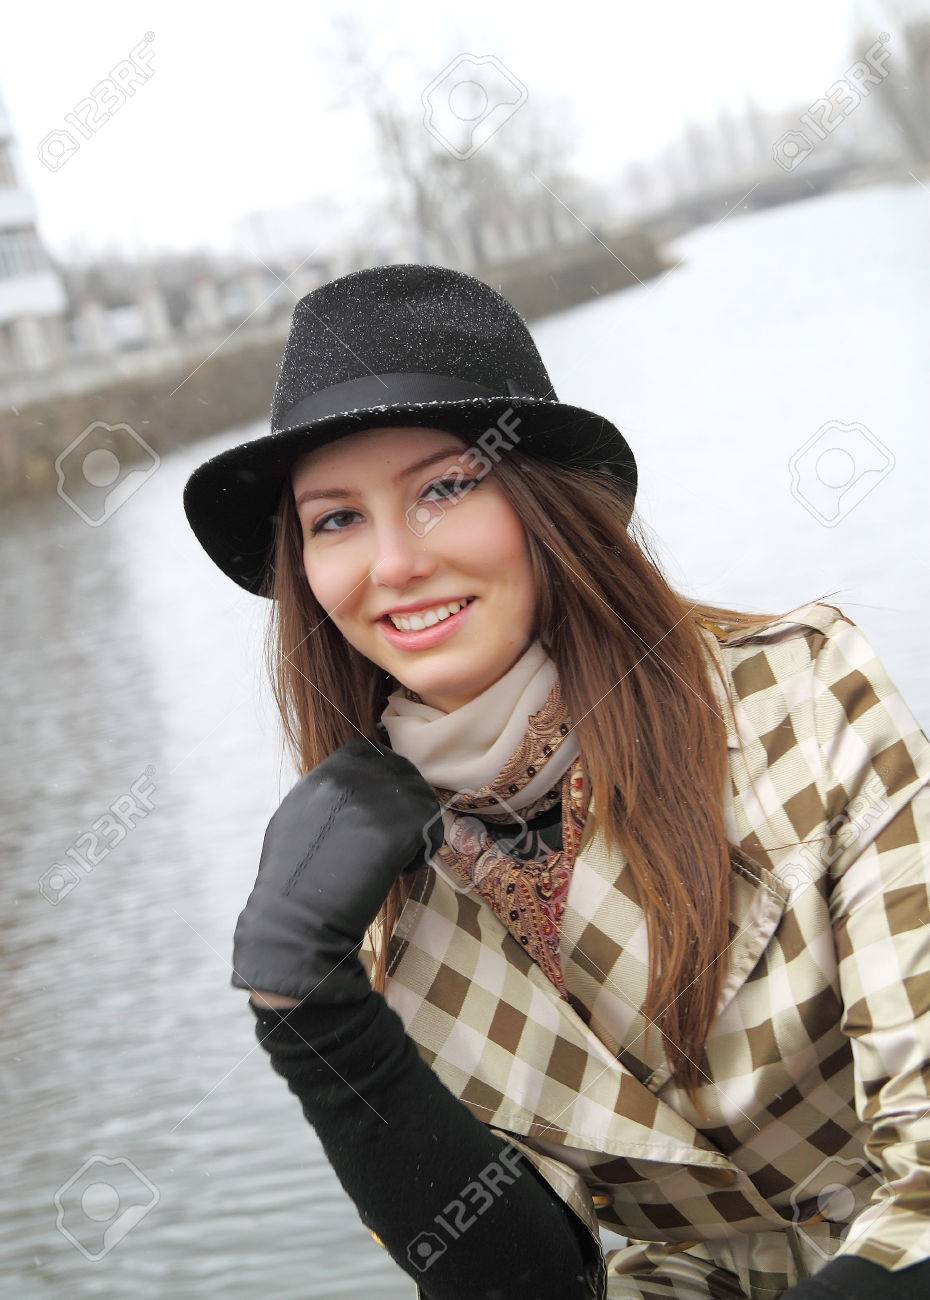 417769b6358 Woman in hat smiling in cold raining weather Stock Photo - 43059773